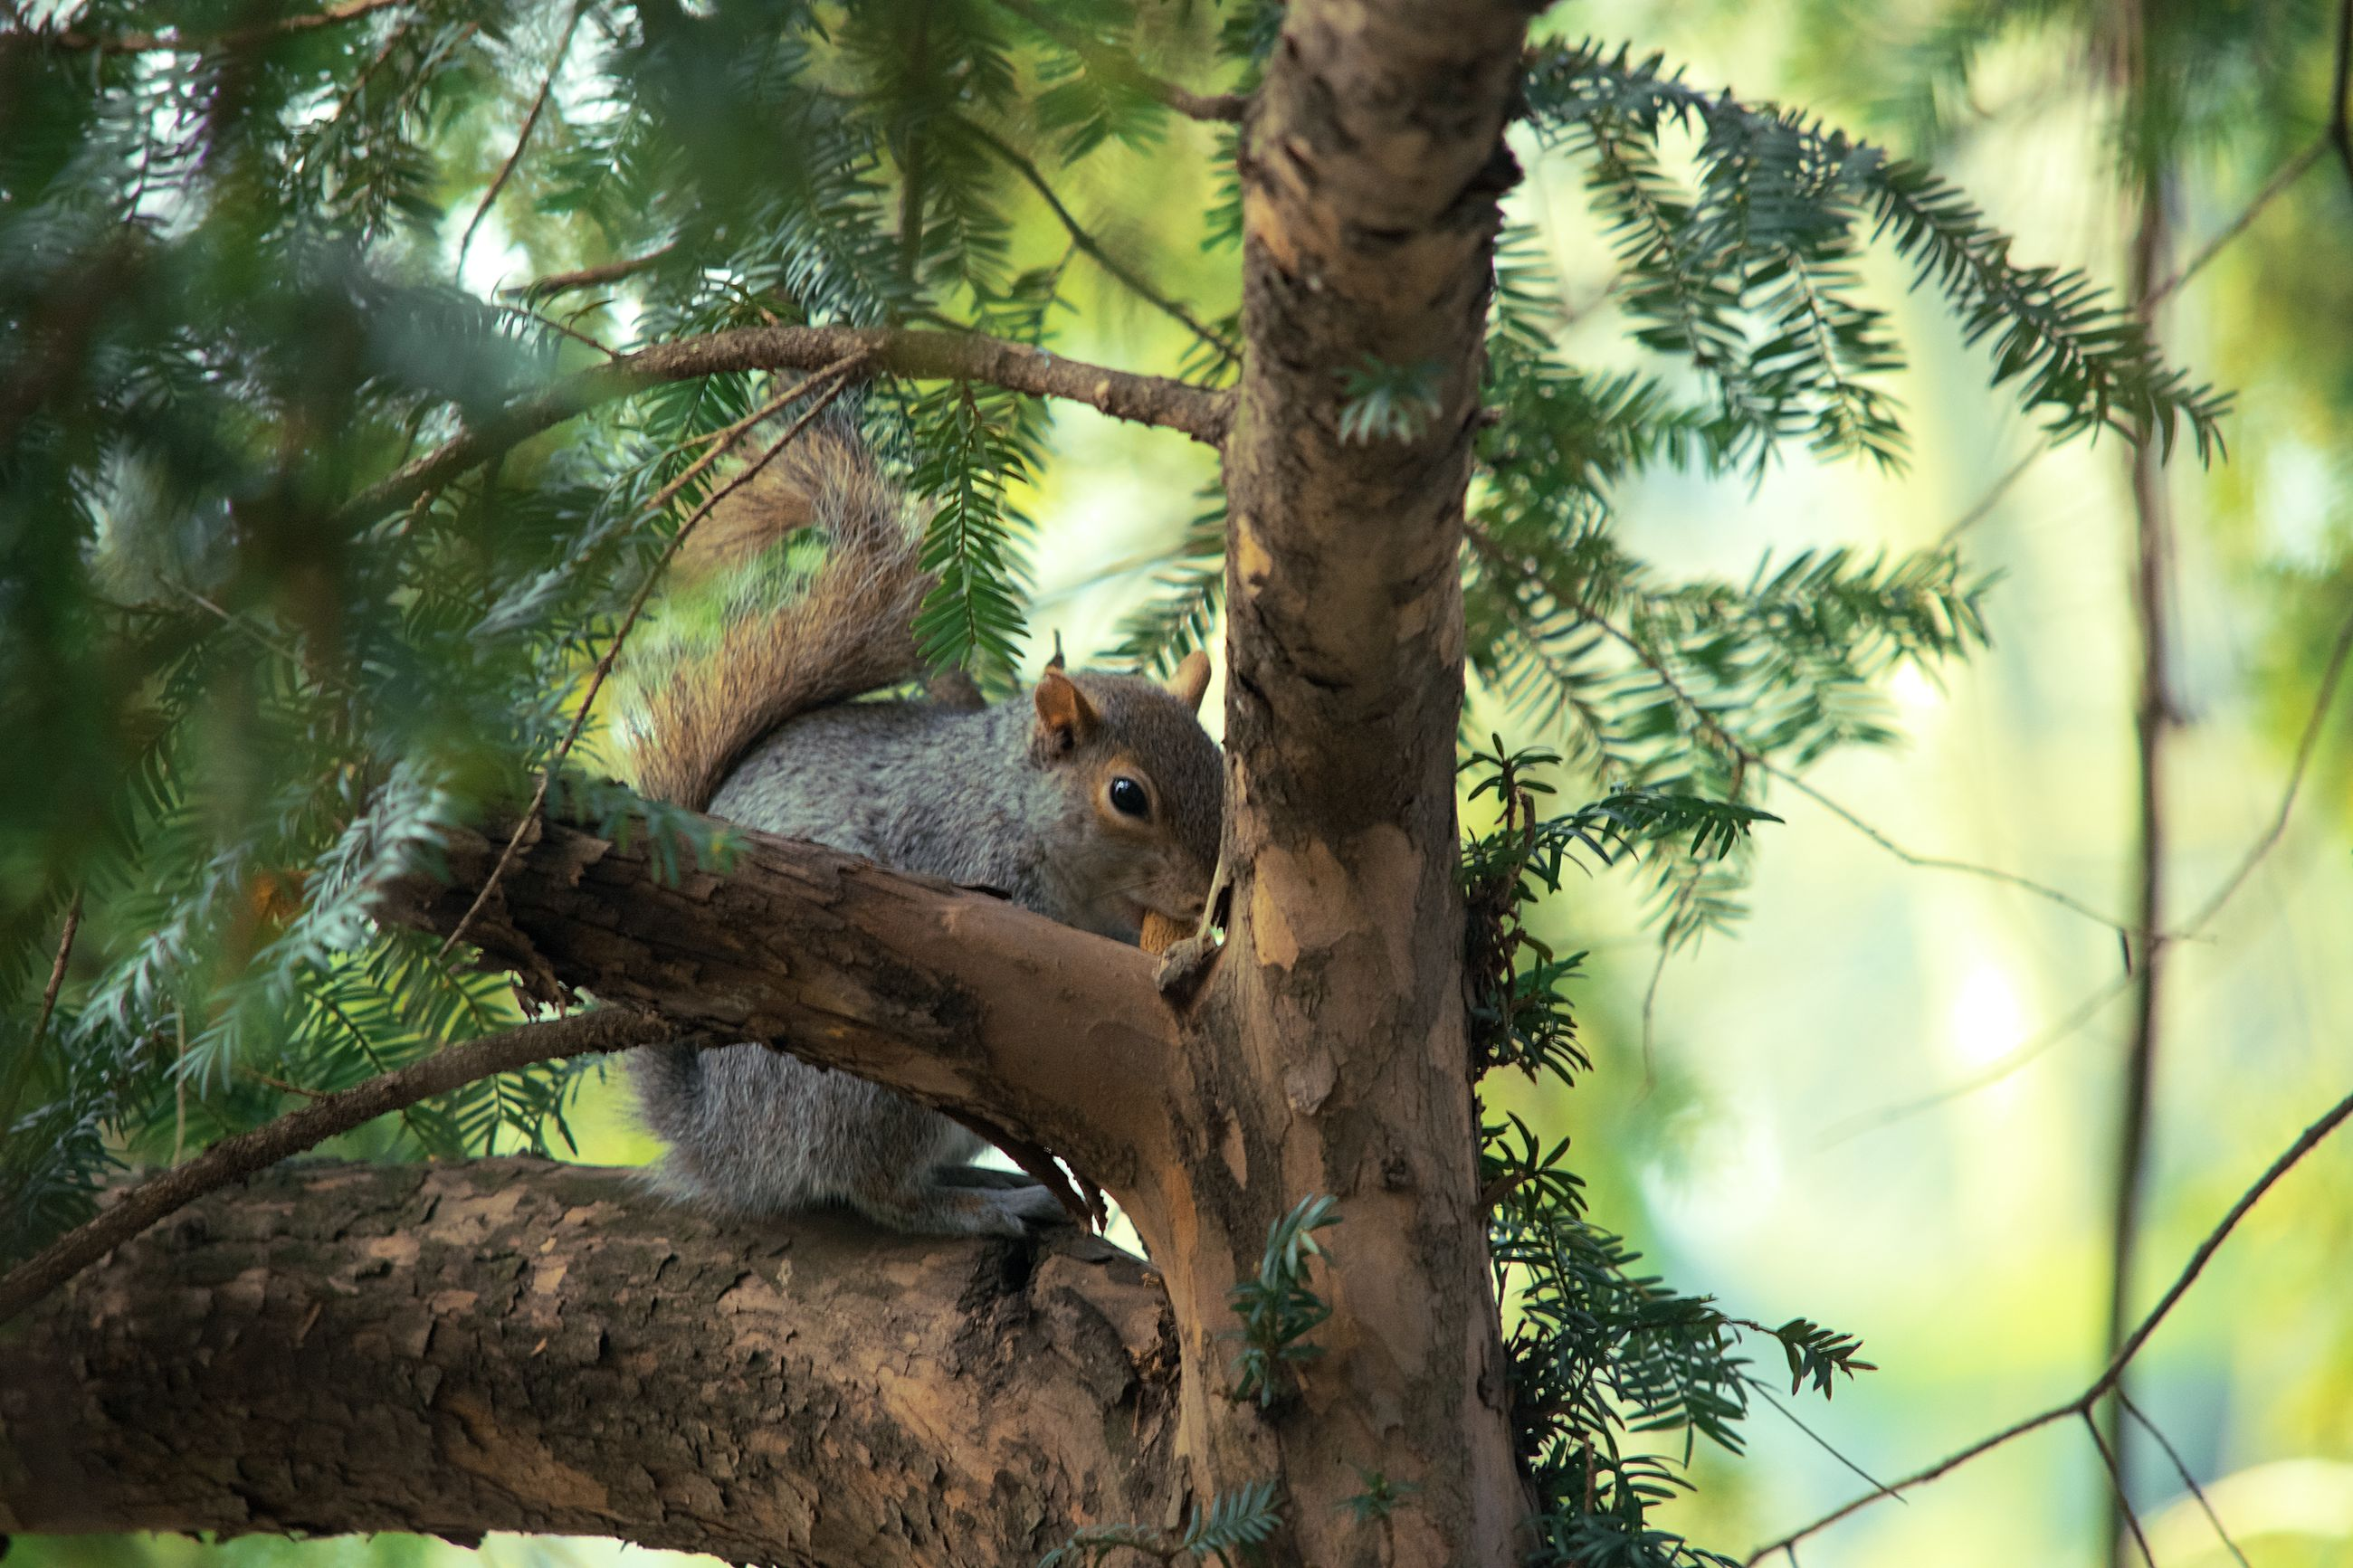 animal, animal themes, tree, animal wildlife, one animal, animals in the wild, plant, mammal, rodent, vertebrate, branch, squirrel, trunk, tree trunk, no people, nature, day, focus on foreground, outdoors, growth, herbivorous